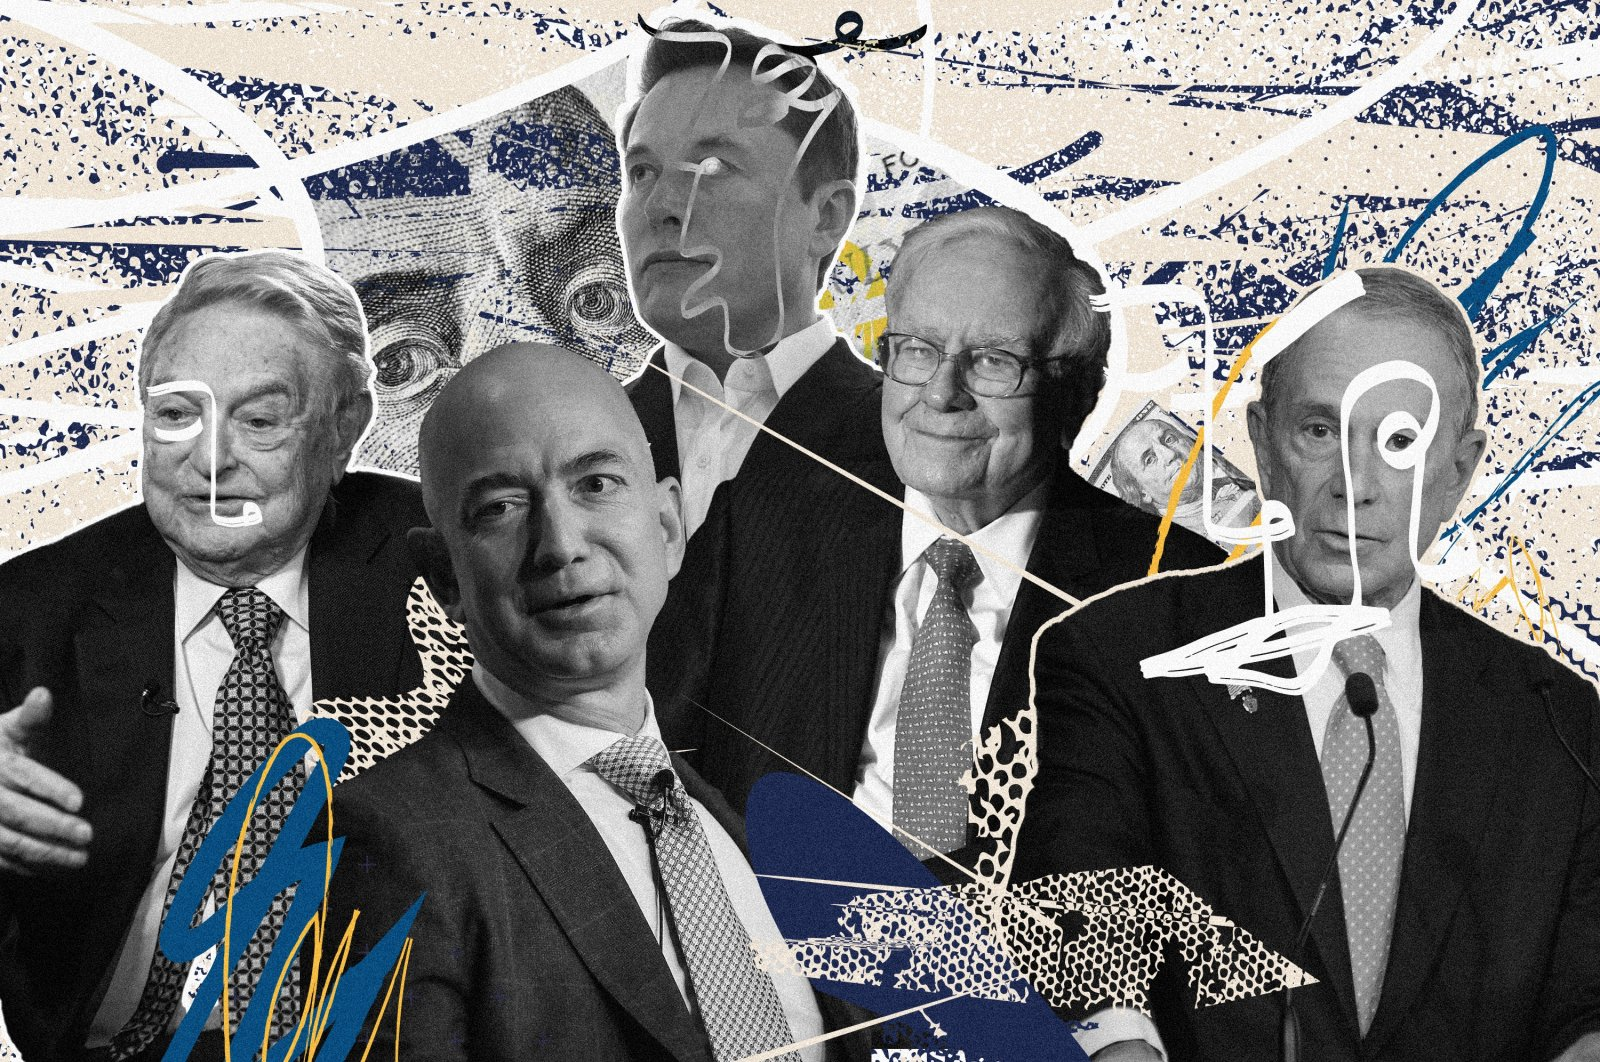 This combination of file pictures created on June 9, 2021 shows (from left to right) Open Society Foundations Chairperson George Soros, Amazon CEO Jeff Bezos, Tesla CEO Elon Musk, Warren Buffett, chairman and CEO of Berkshire Hathaway and Michael Bloomberg, former New York City mayor and founder of Bloomberg LP.